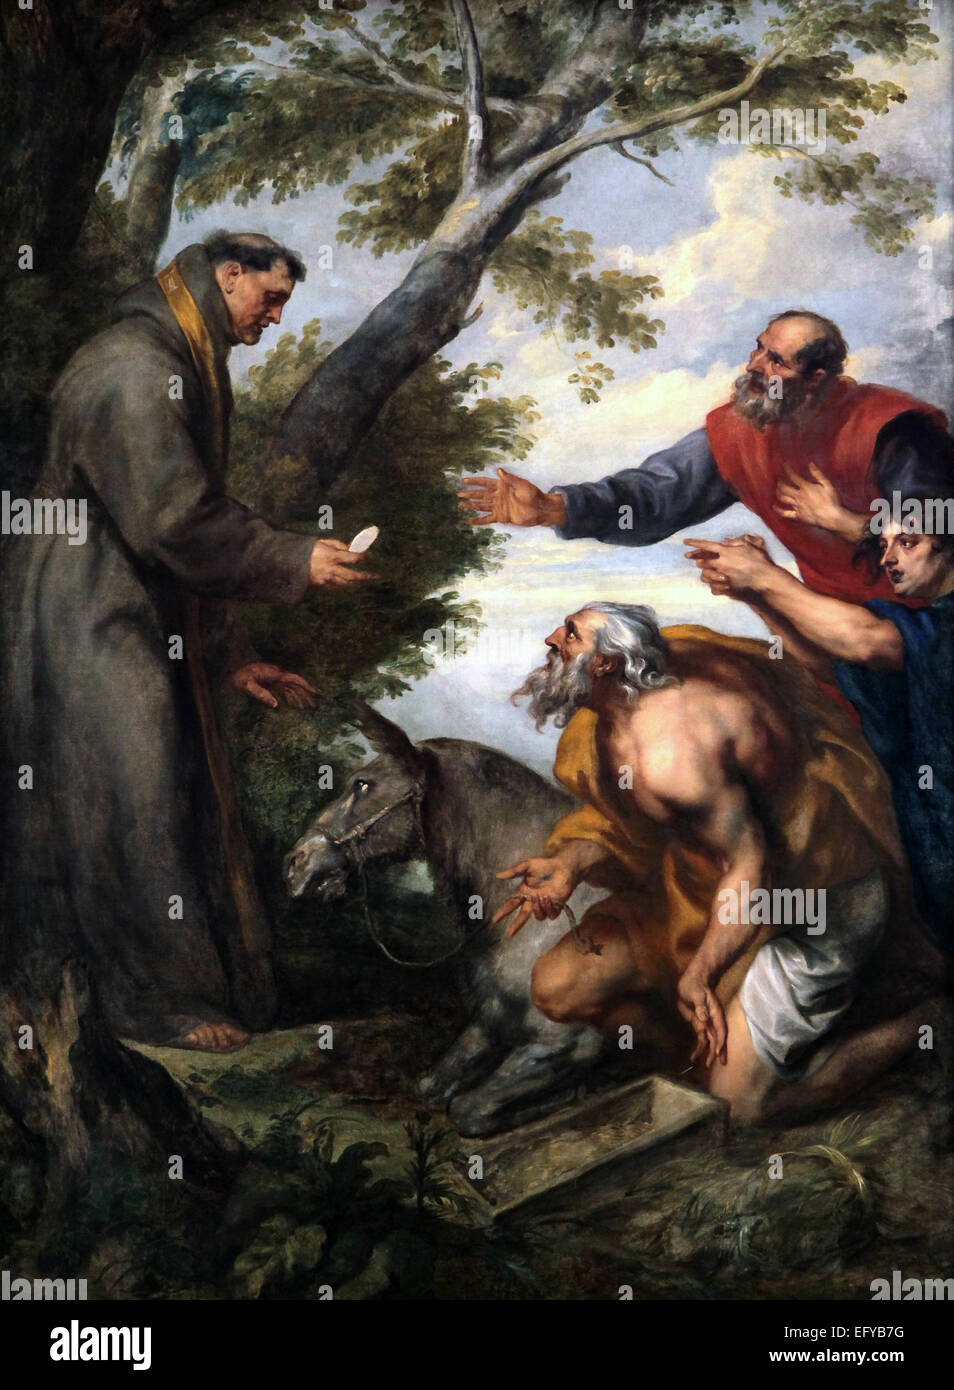 Anton van Dyck.1599-1641.The Miracle of the mule or Miracle of St. Anthony of Padua. - Stock Image